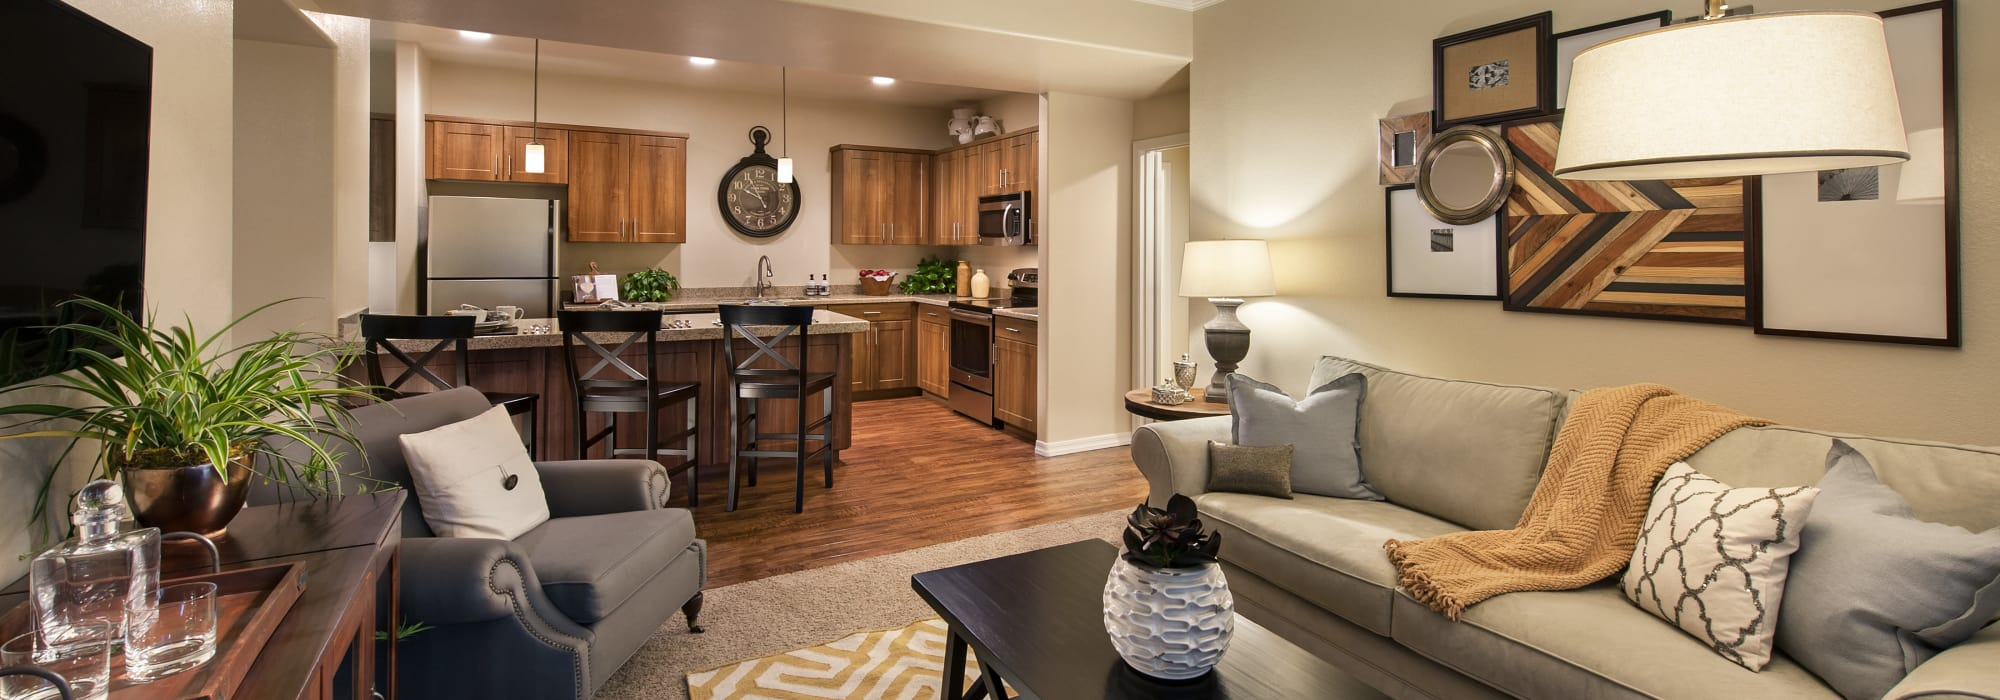 Well-decorated living area in open-concept floor plan of model home at San Paseo in Phoenix, Arizona